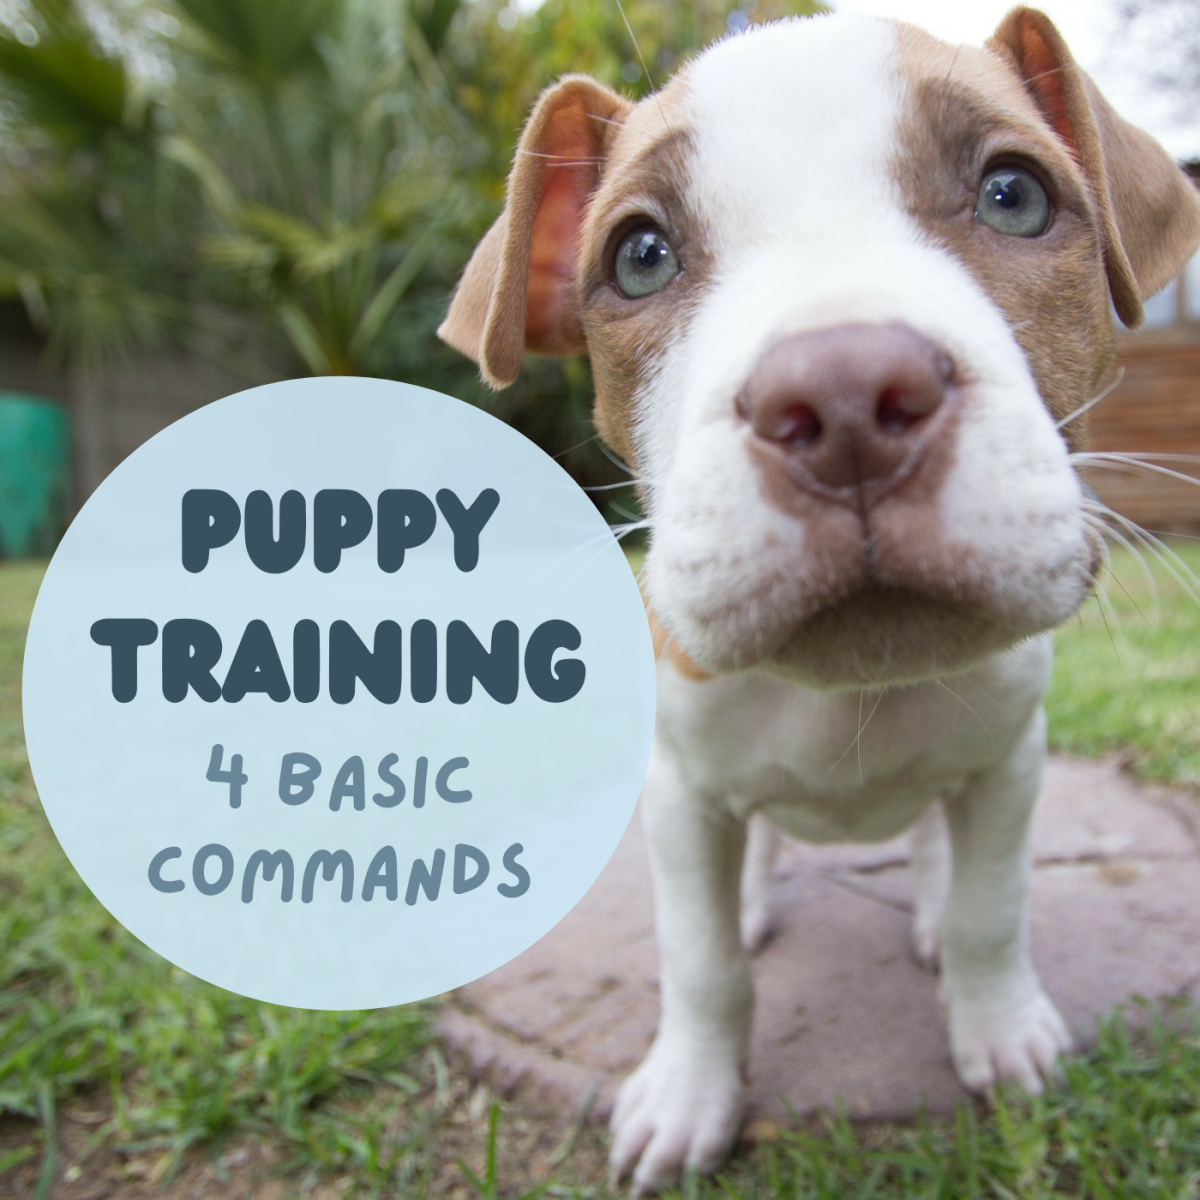 4 Basic Commands to Start Teaching and Training a Puppy Early